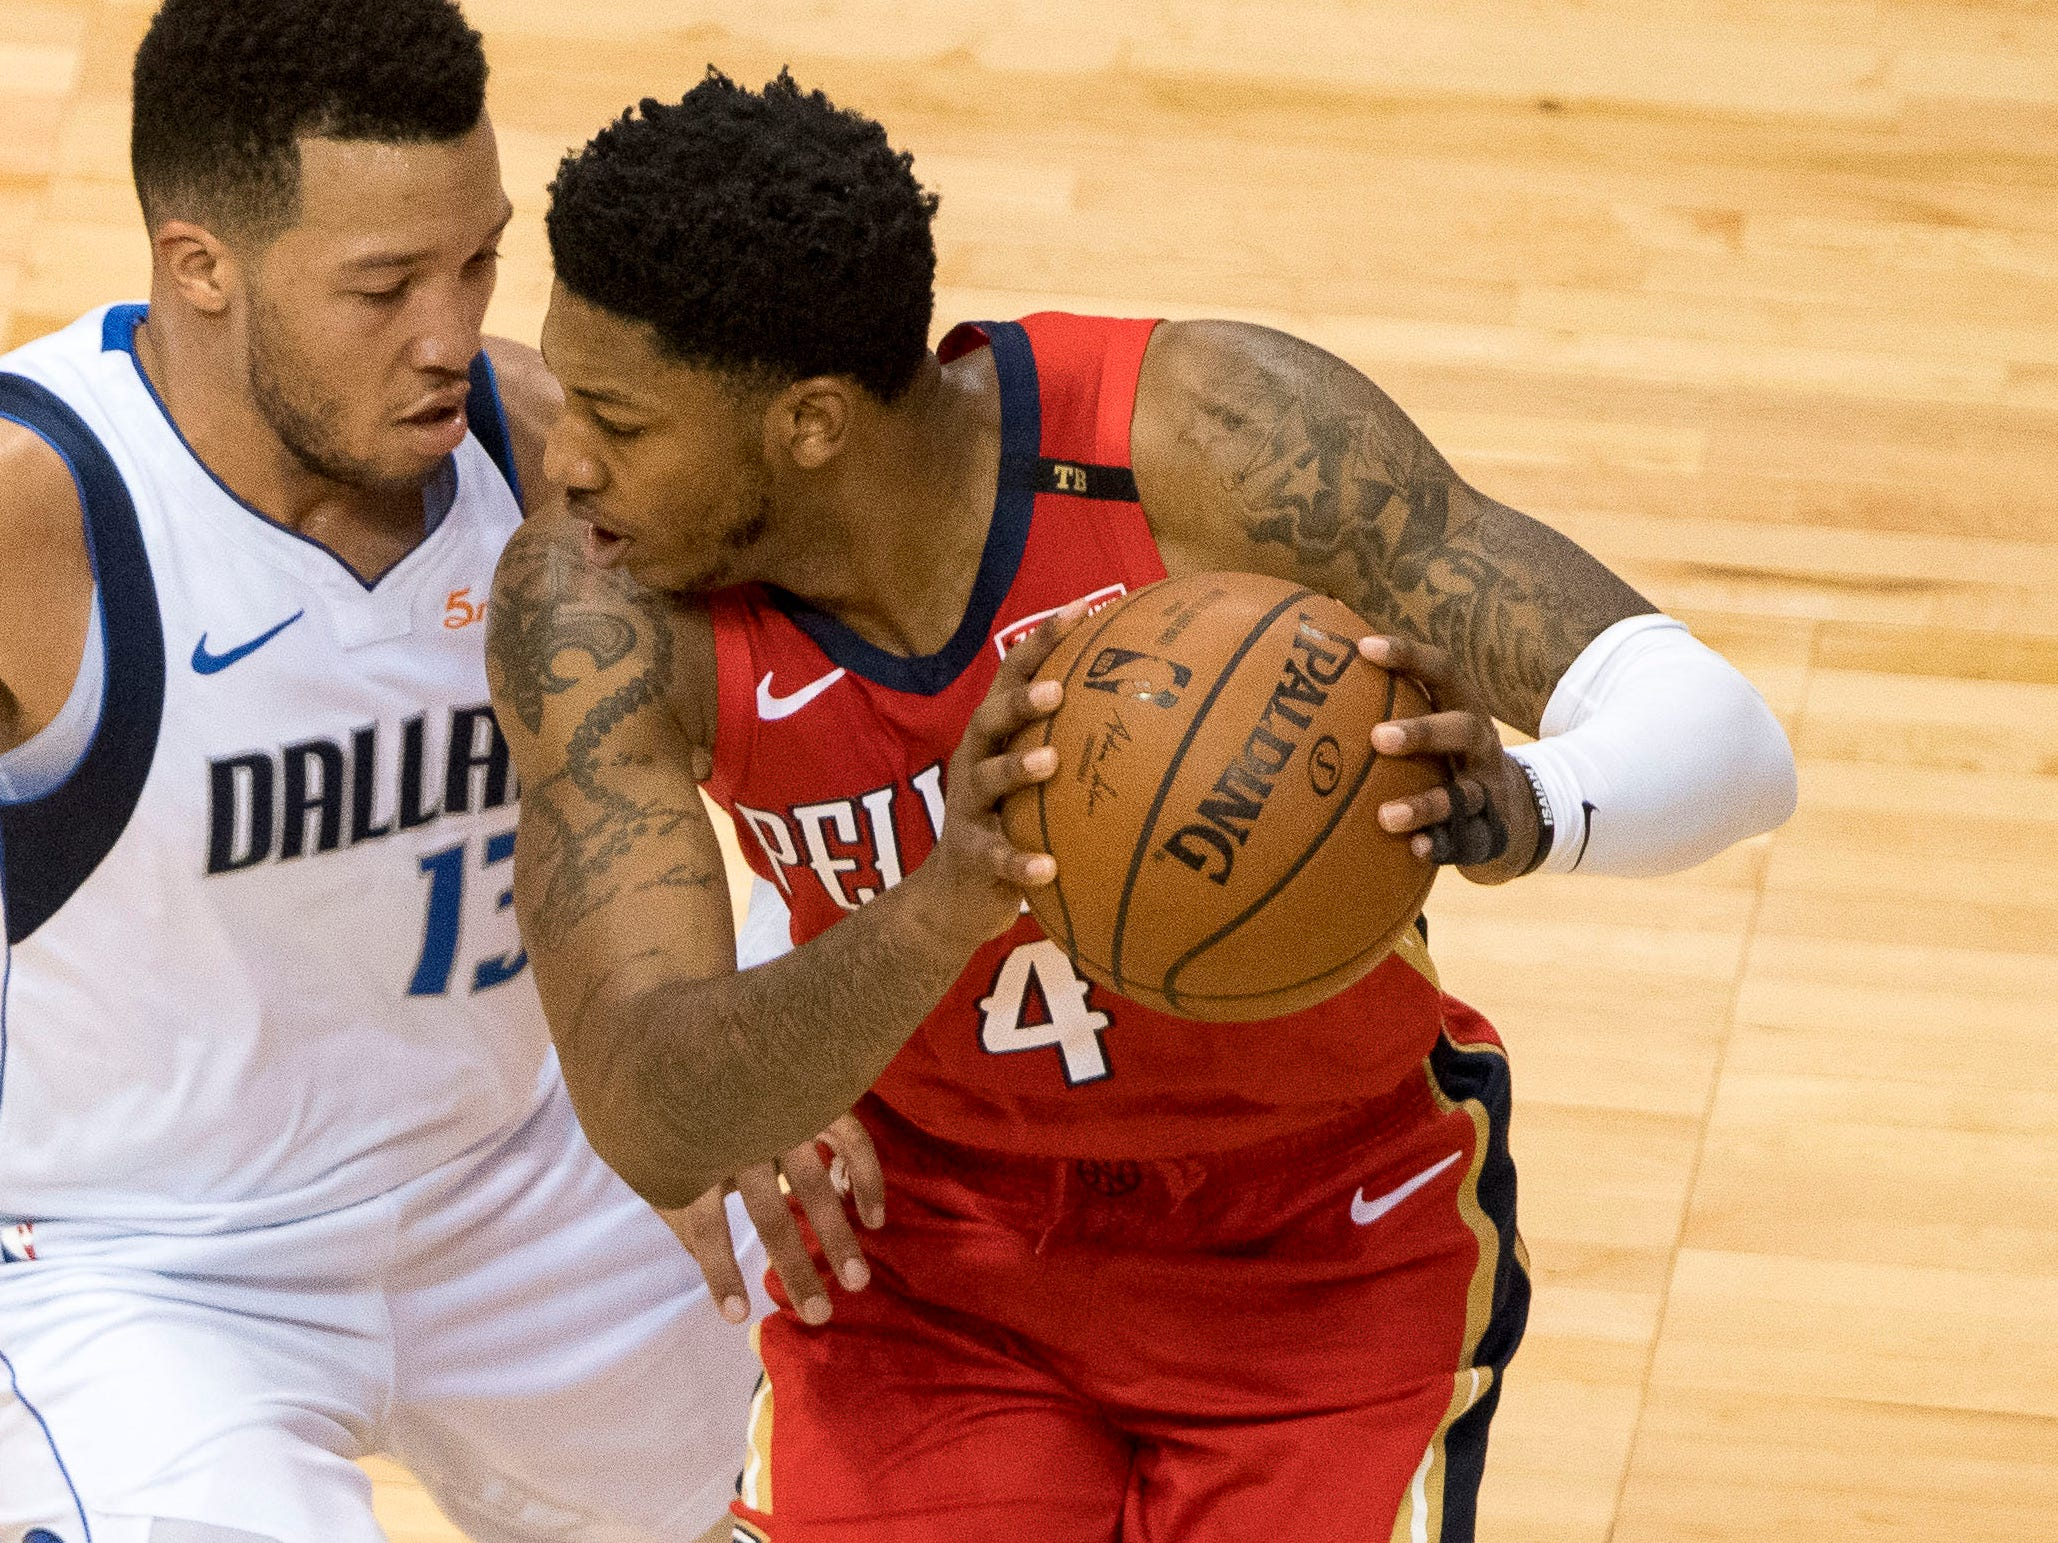 104. Elfrid Payton, Pelicans (March 18): 19 points, 11 assists, 10 rebounds in 129-125 win over Mavericks (sixth of season).